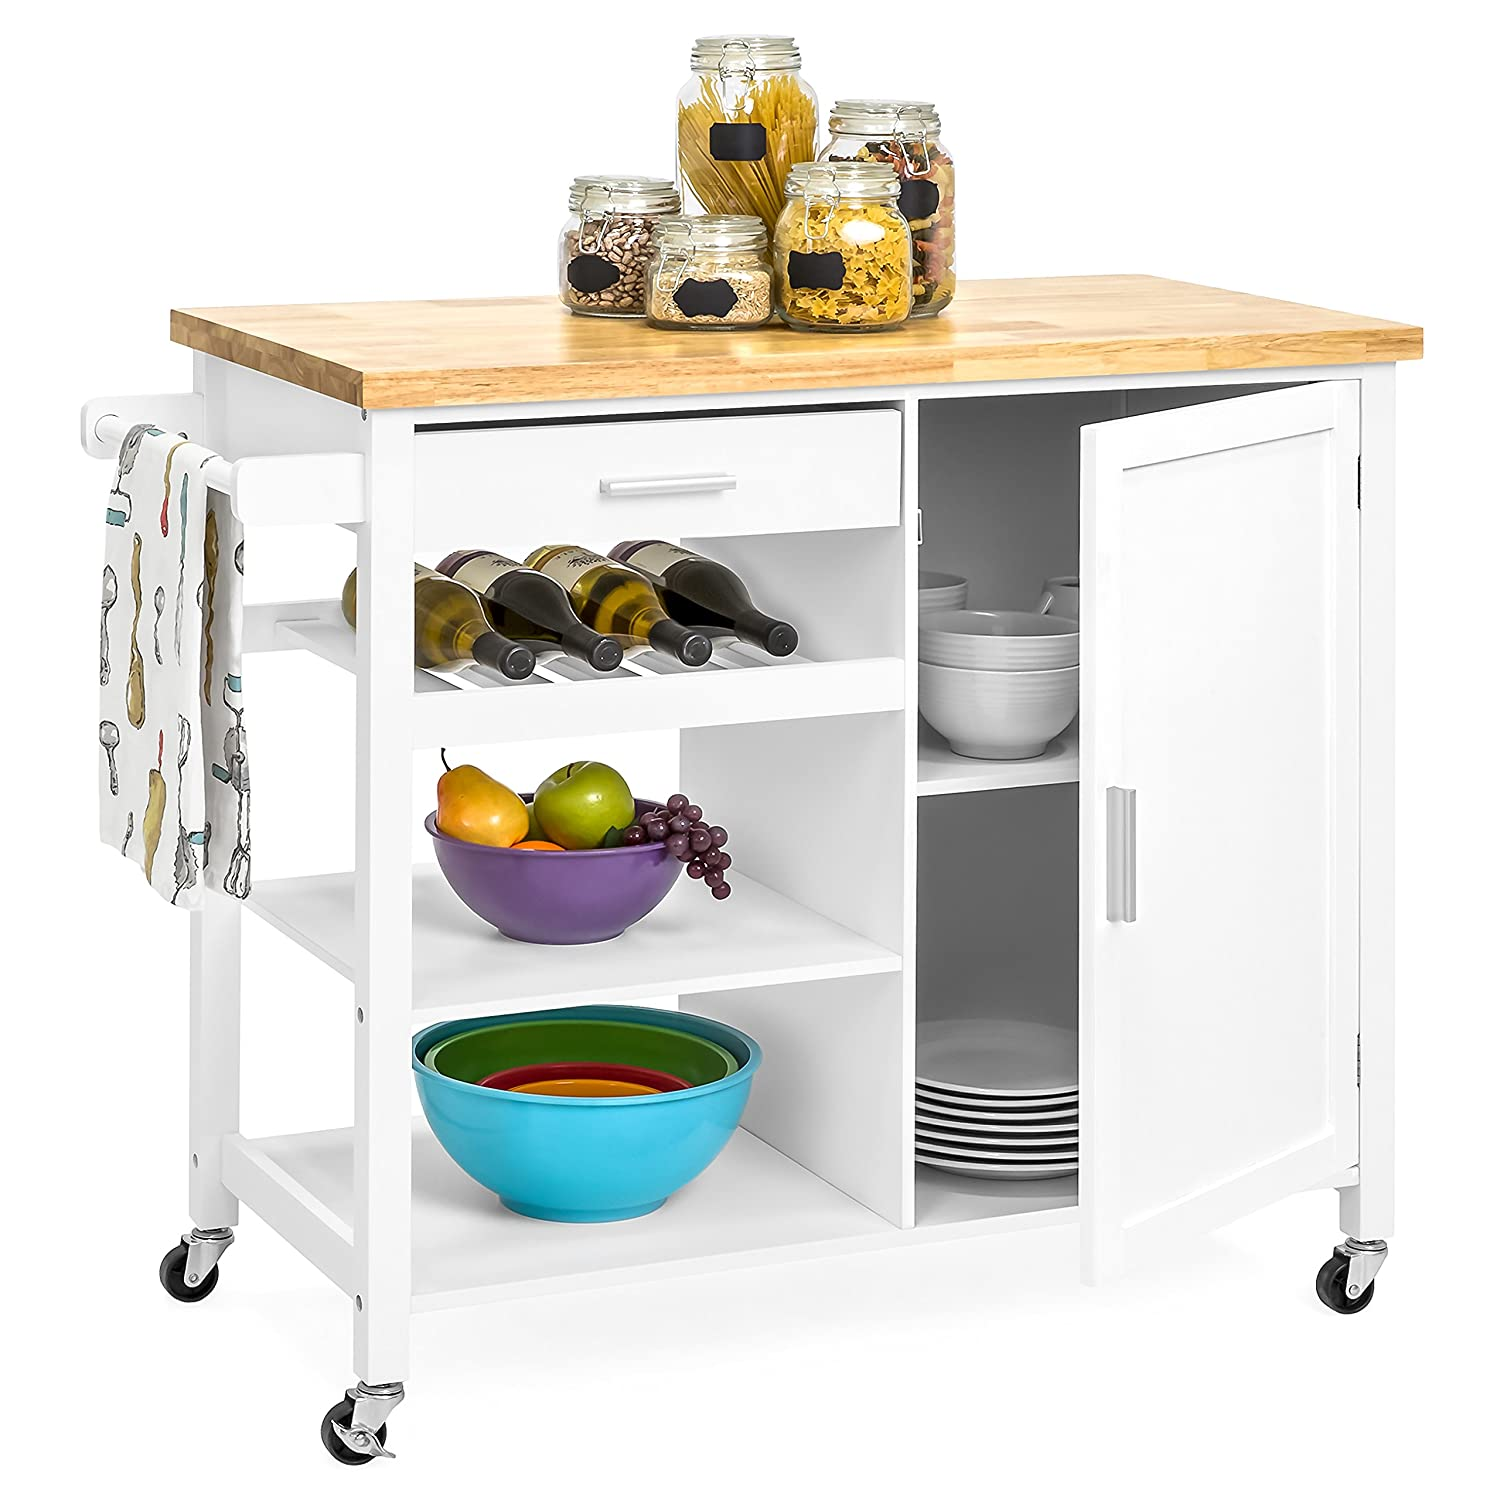 Best Wood Rolling Kitchen Storage Trolley Cart Your House